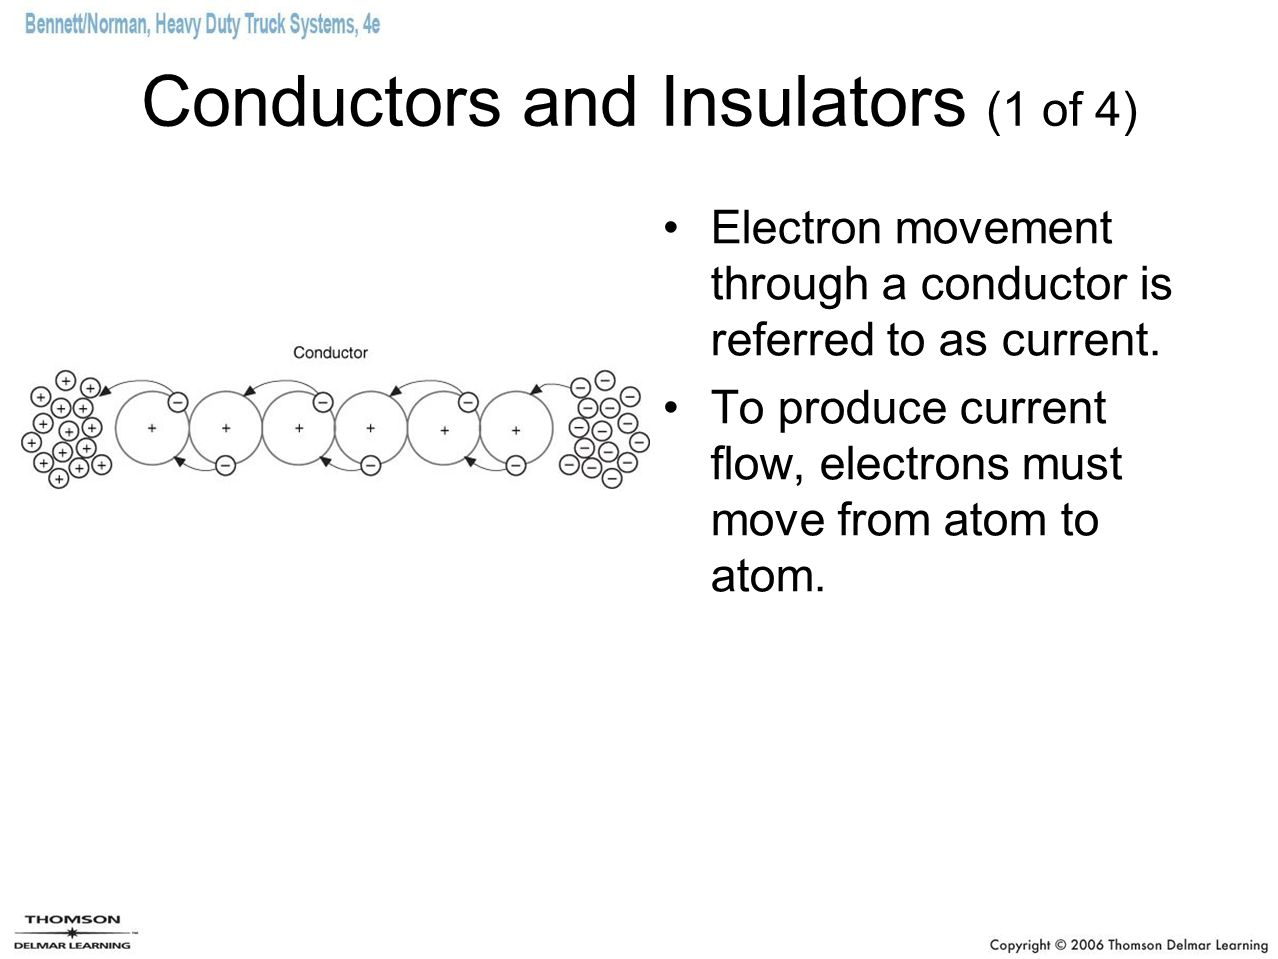 Conductors and Insulators (1 of 4) Electron movement through a conductor is referred to as current.